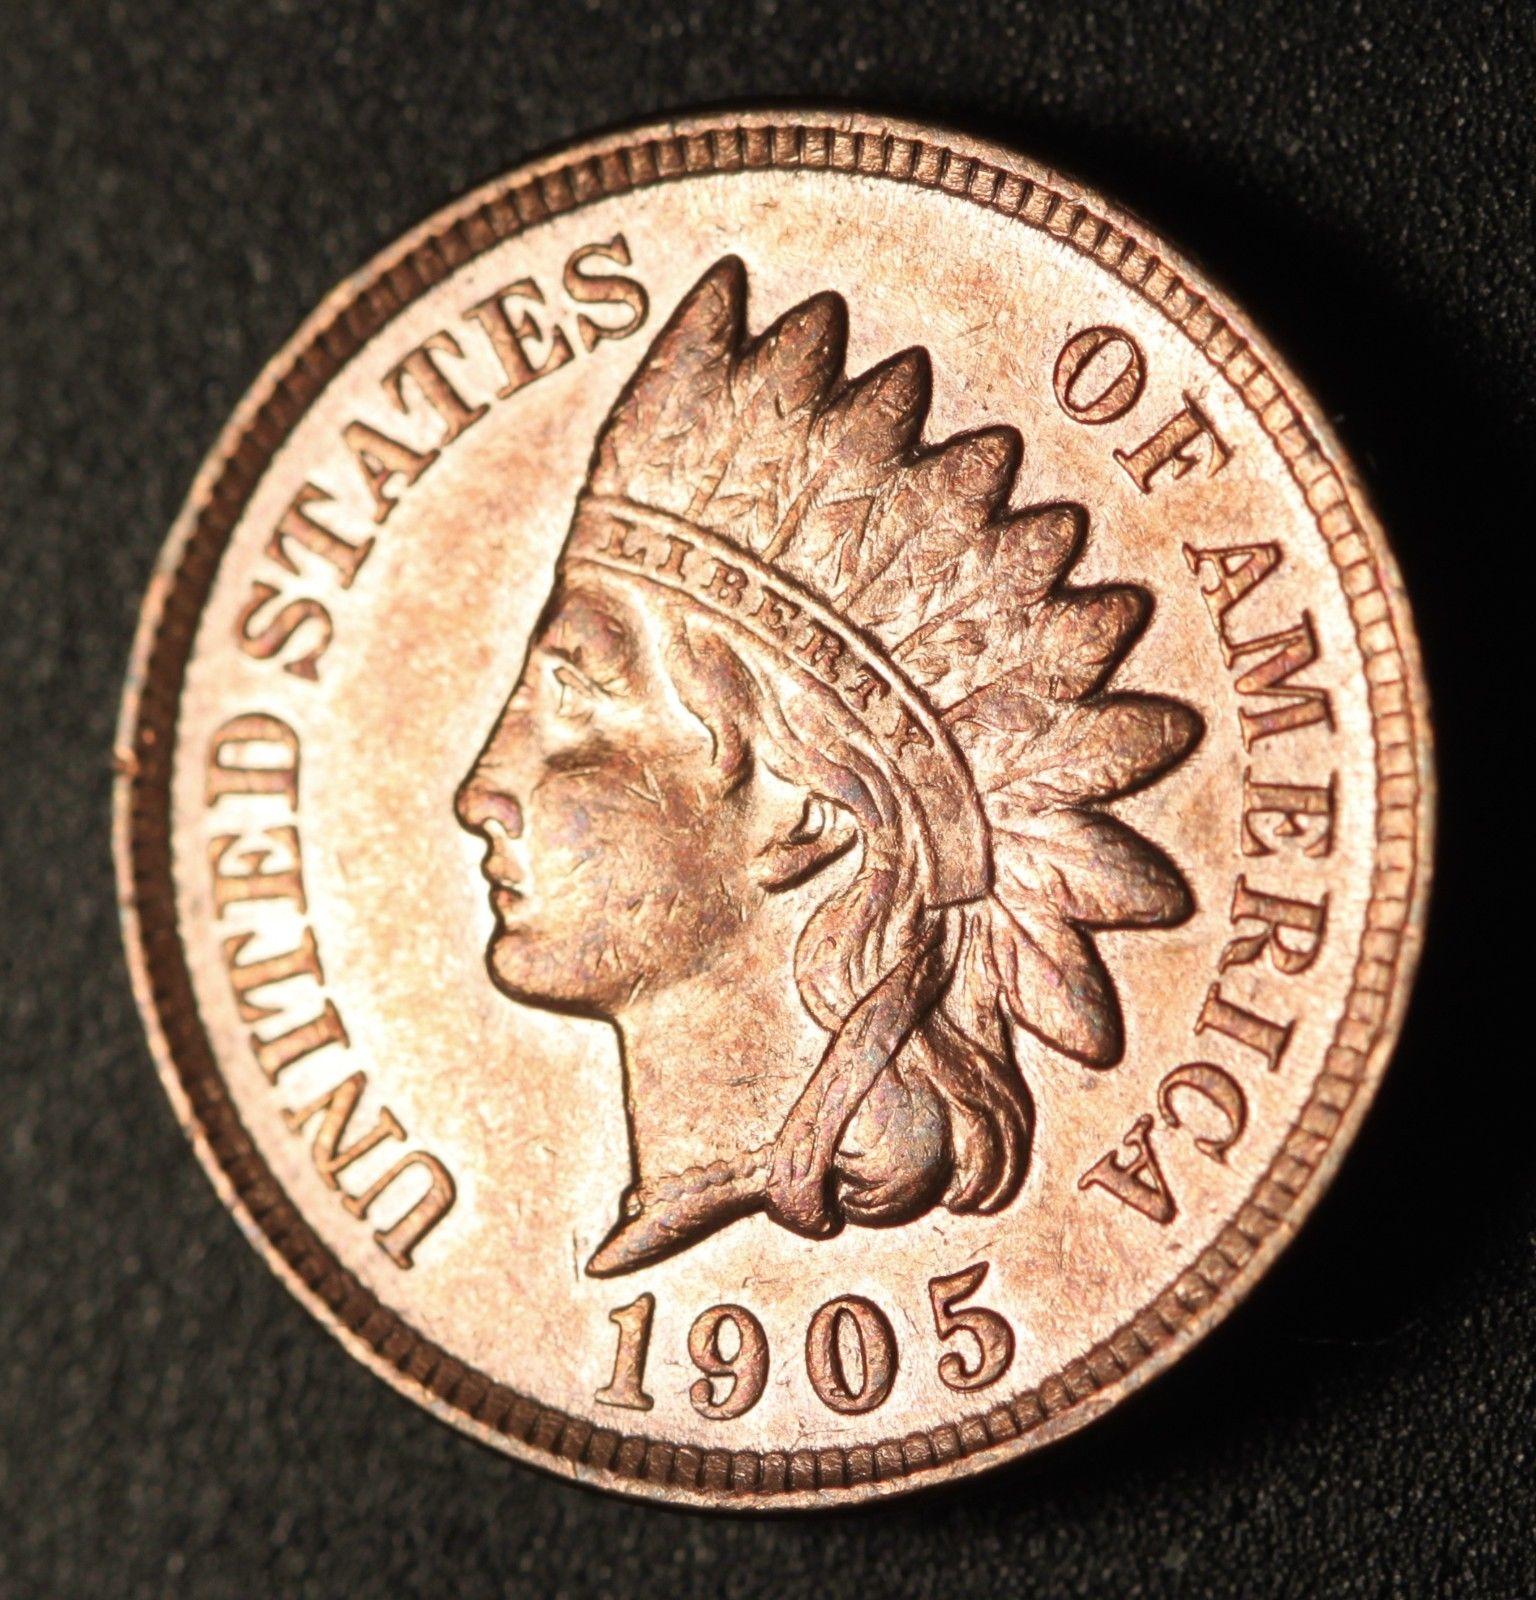 1905 RPD-002 - Indian Head Penny - Photo by Ed Nathanson